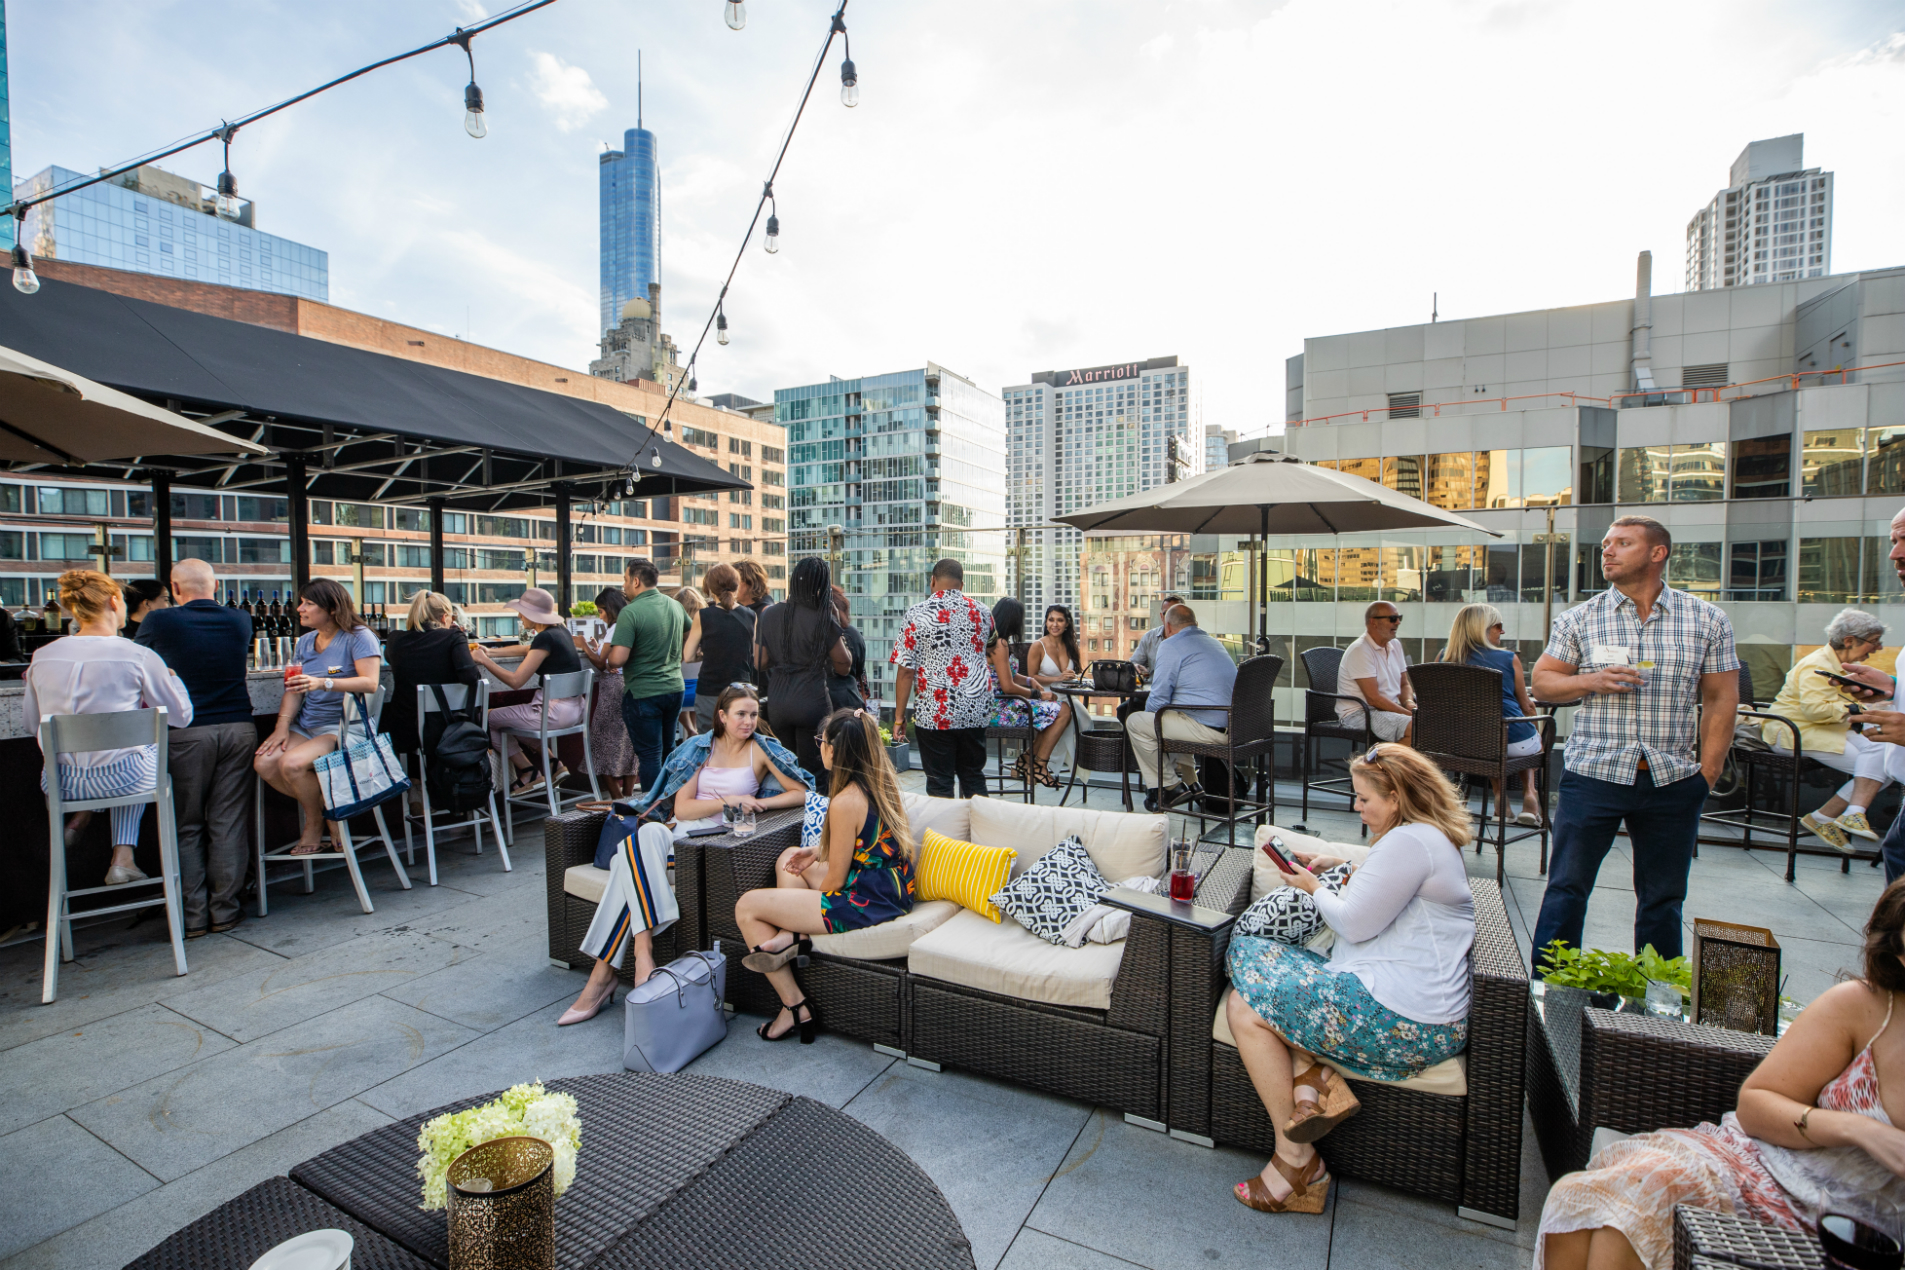 patrons at ivy hotel's private rooftop bar in downtown Chicago